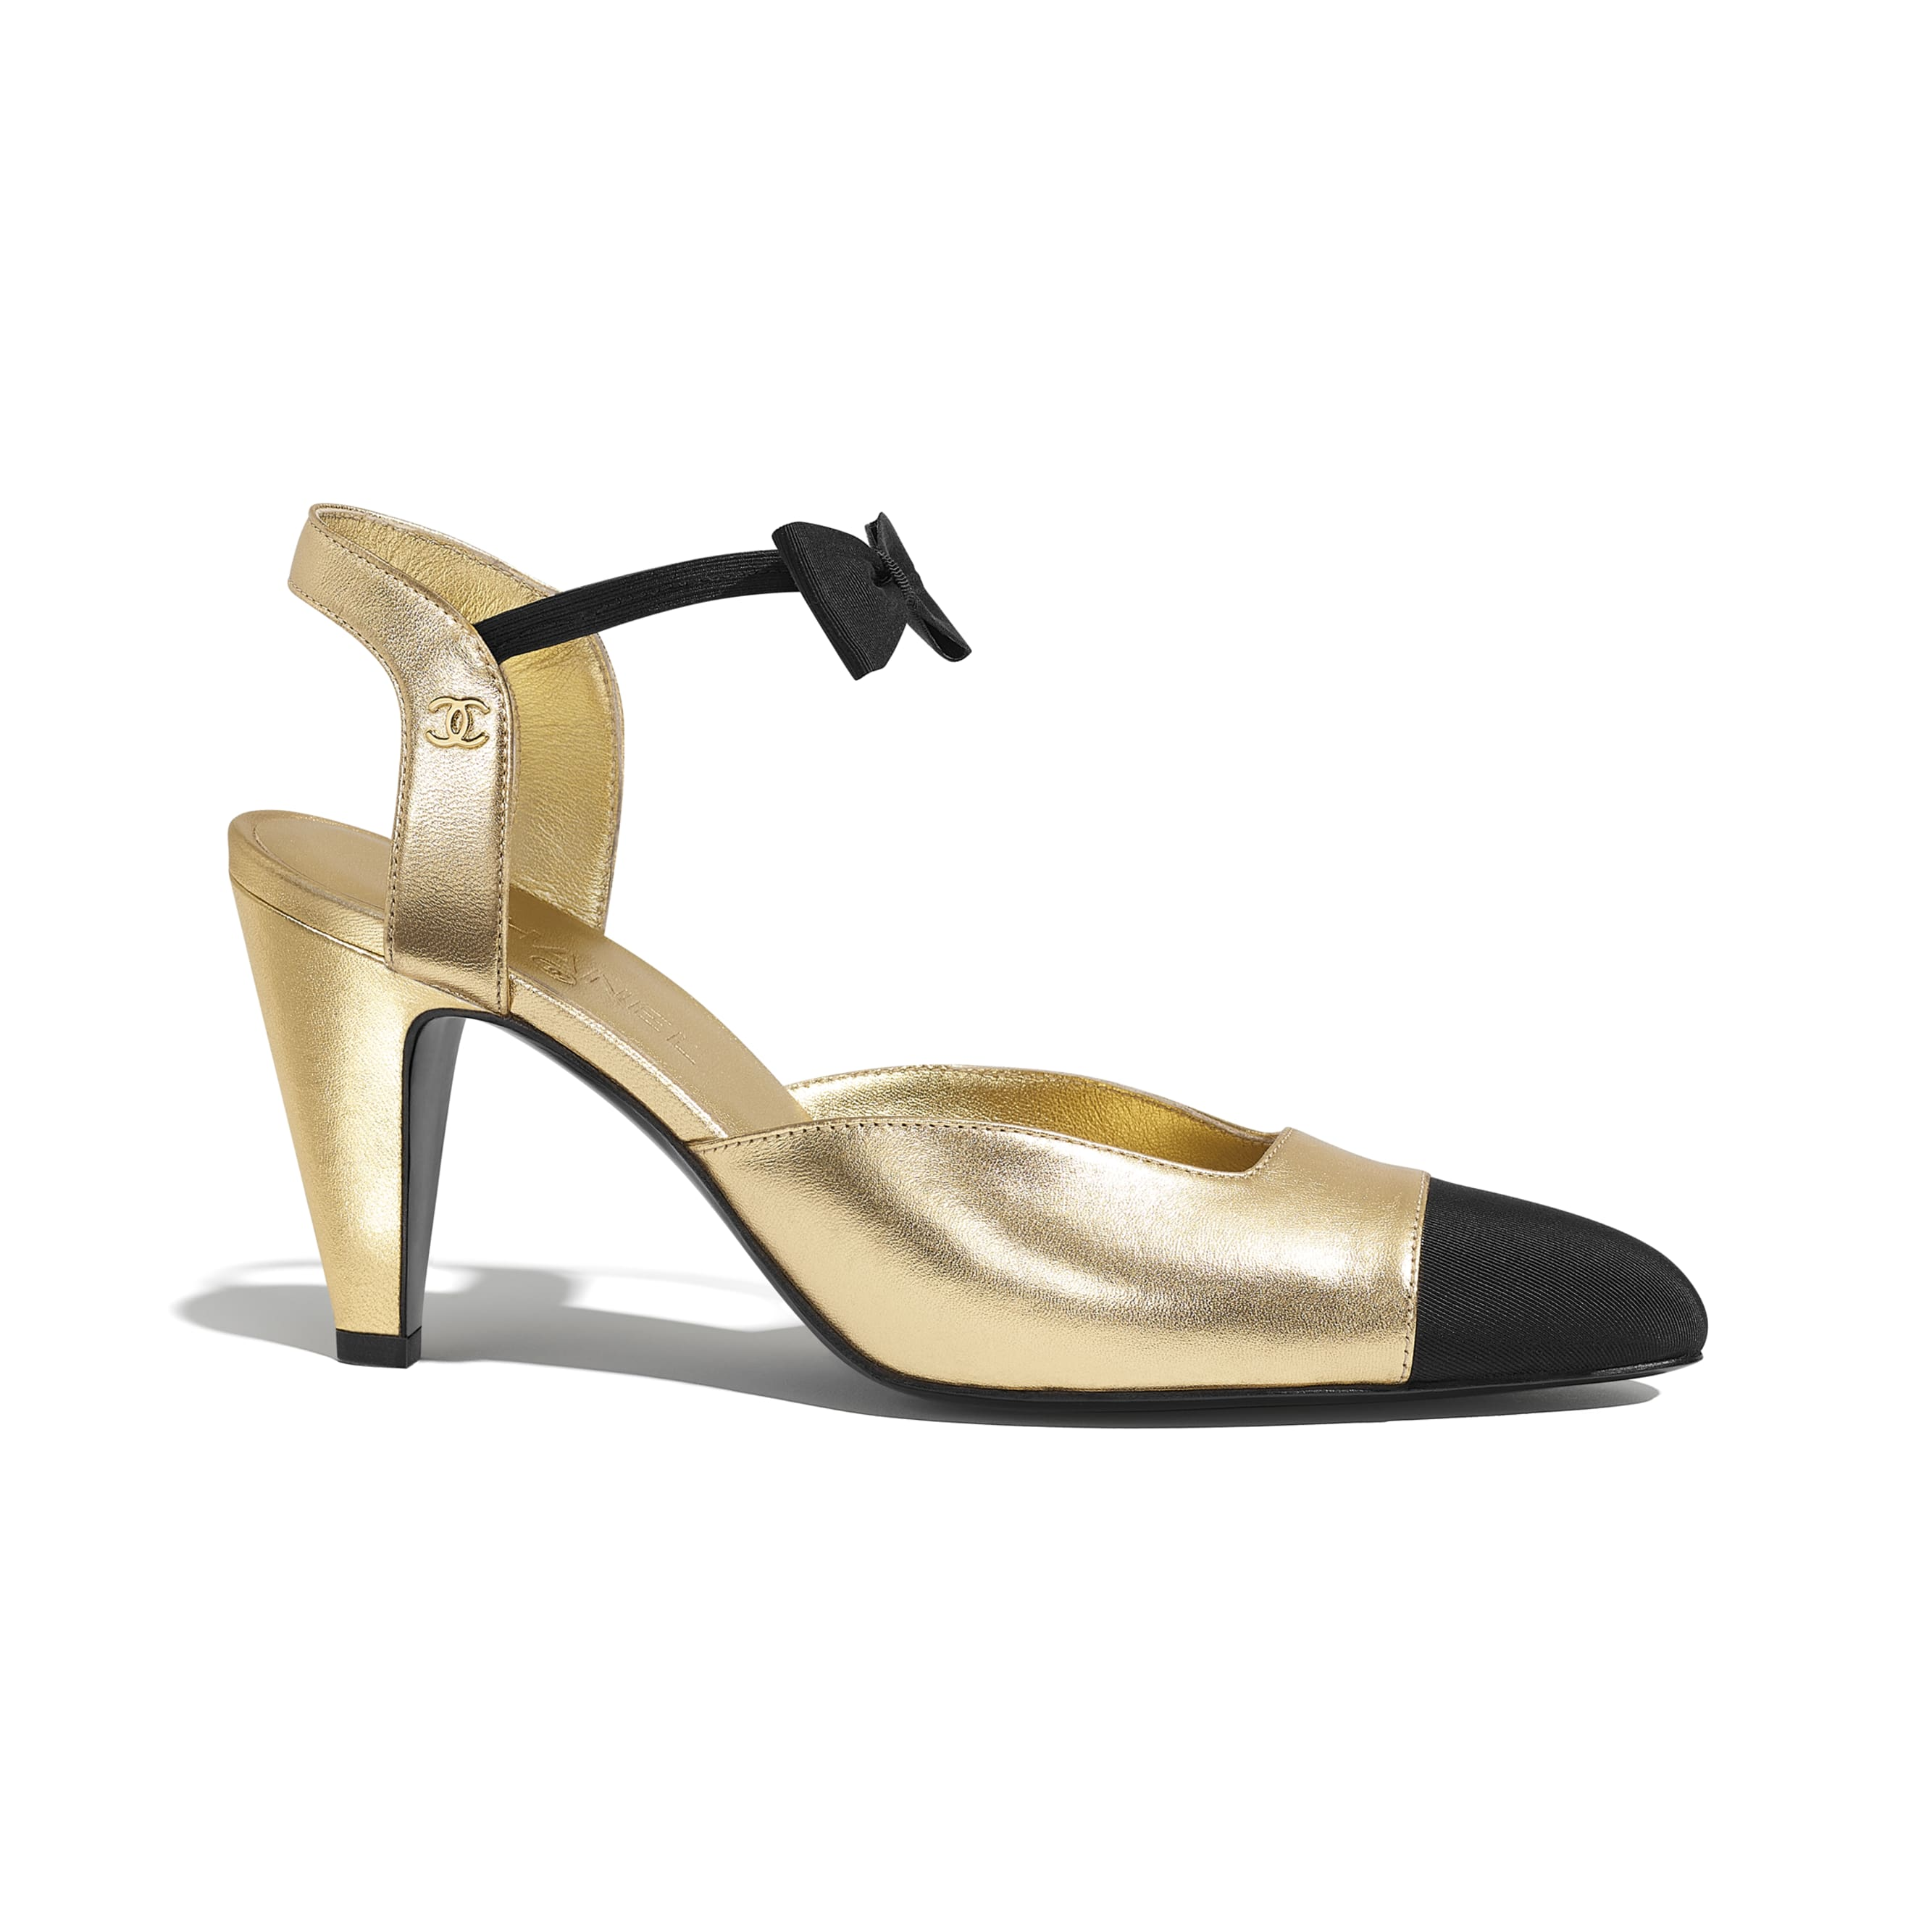 Pumps - Gold & Black - Laminated Lambskin & Grosgrain - CHANEL - Default view - see standard sized version